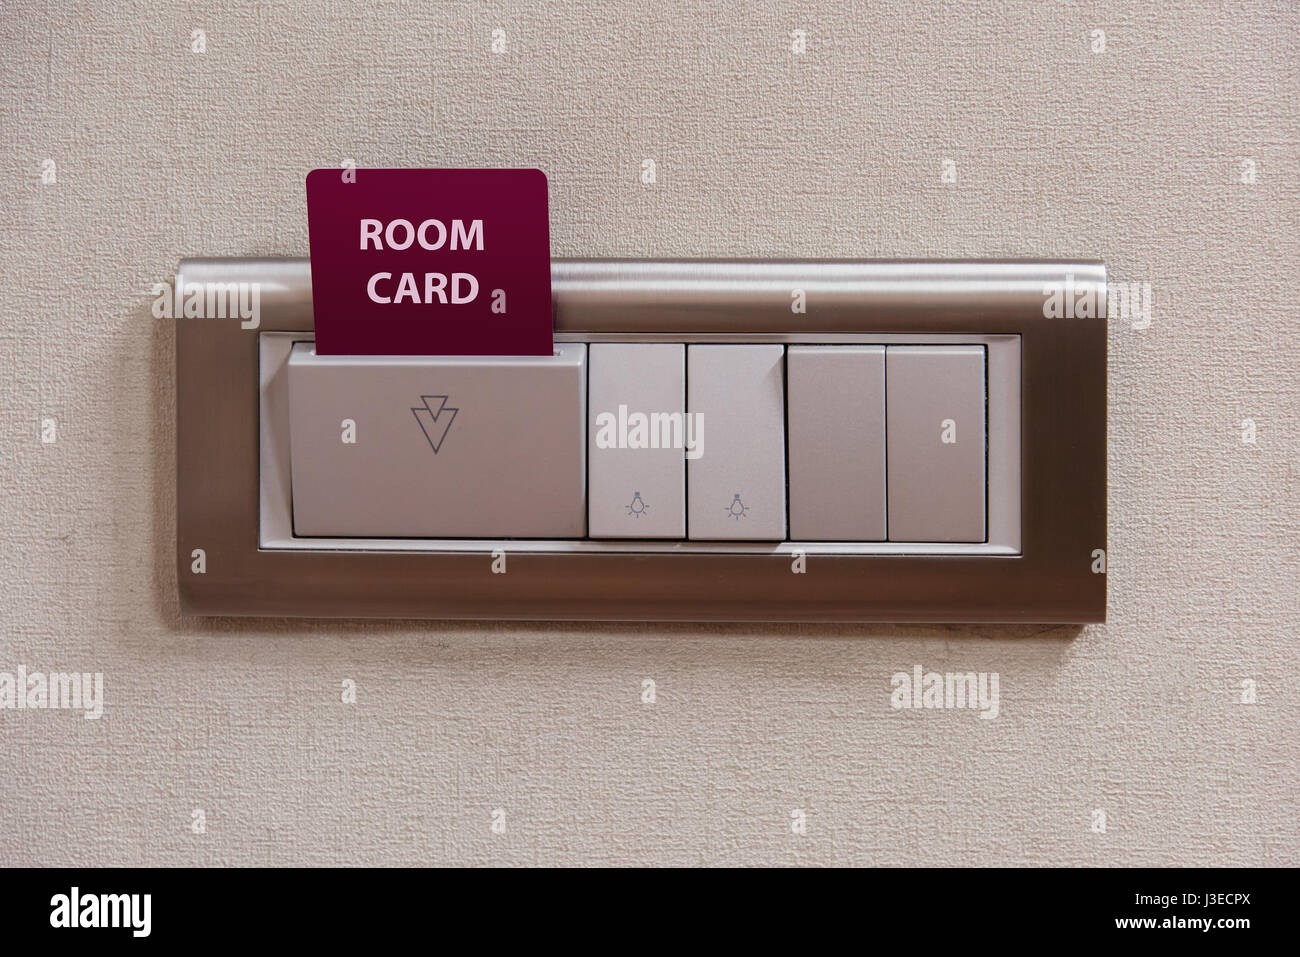 Hotel key card insert to power switch control of the electric and ...